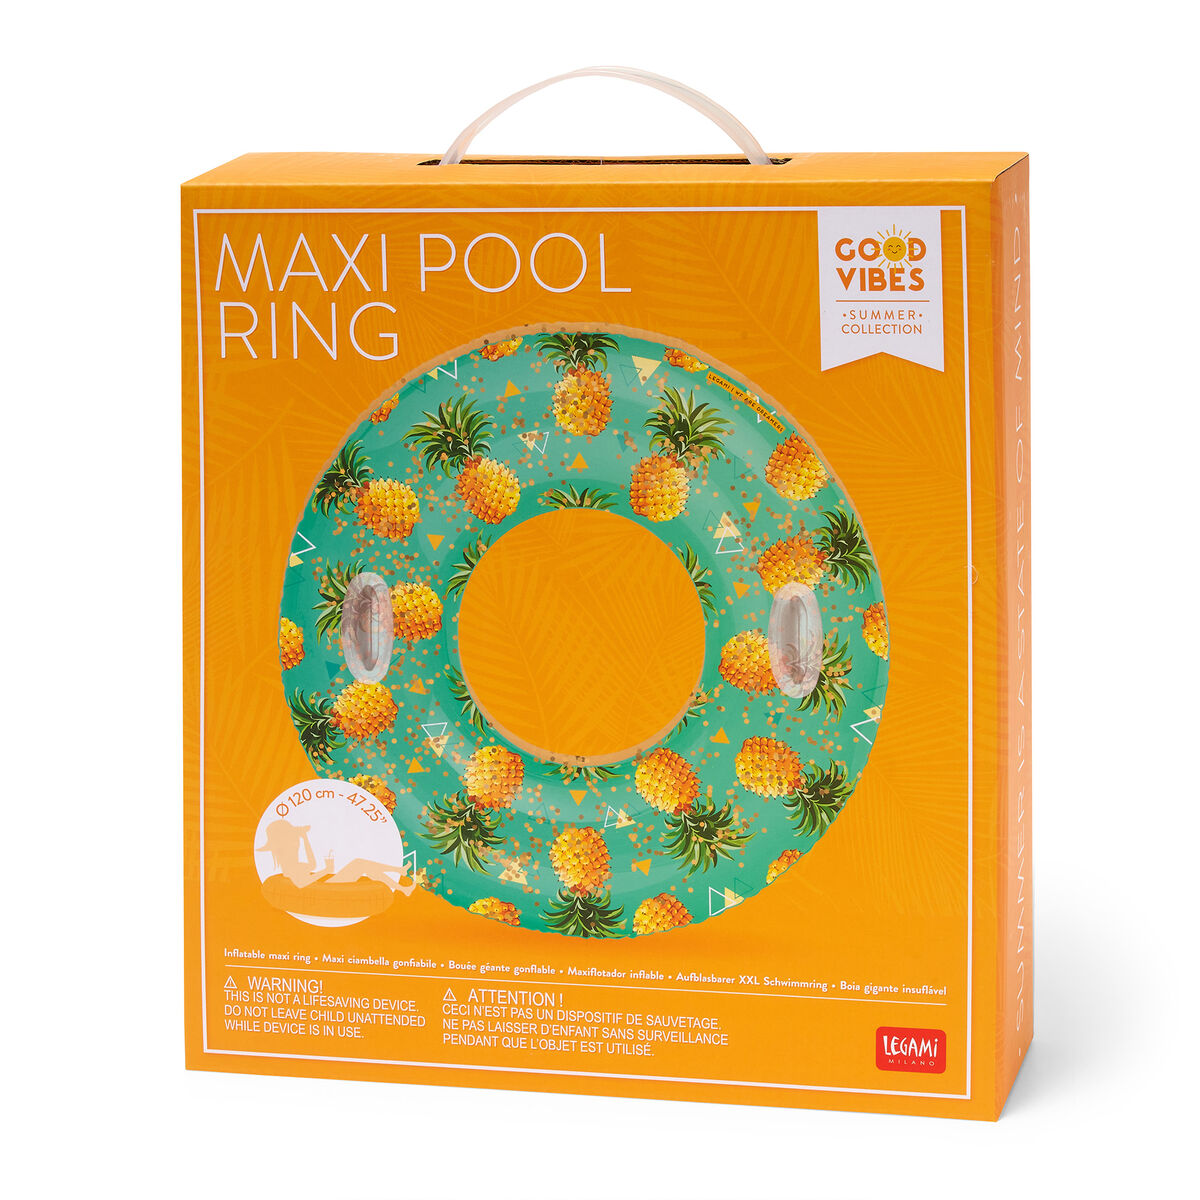 Maxi Pool Ring, , zoo